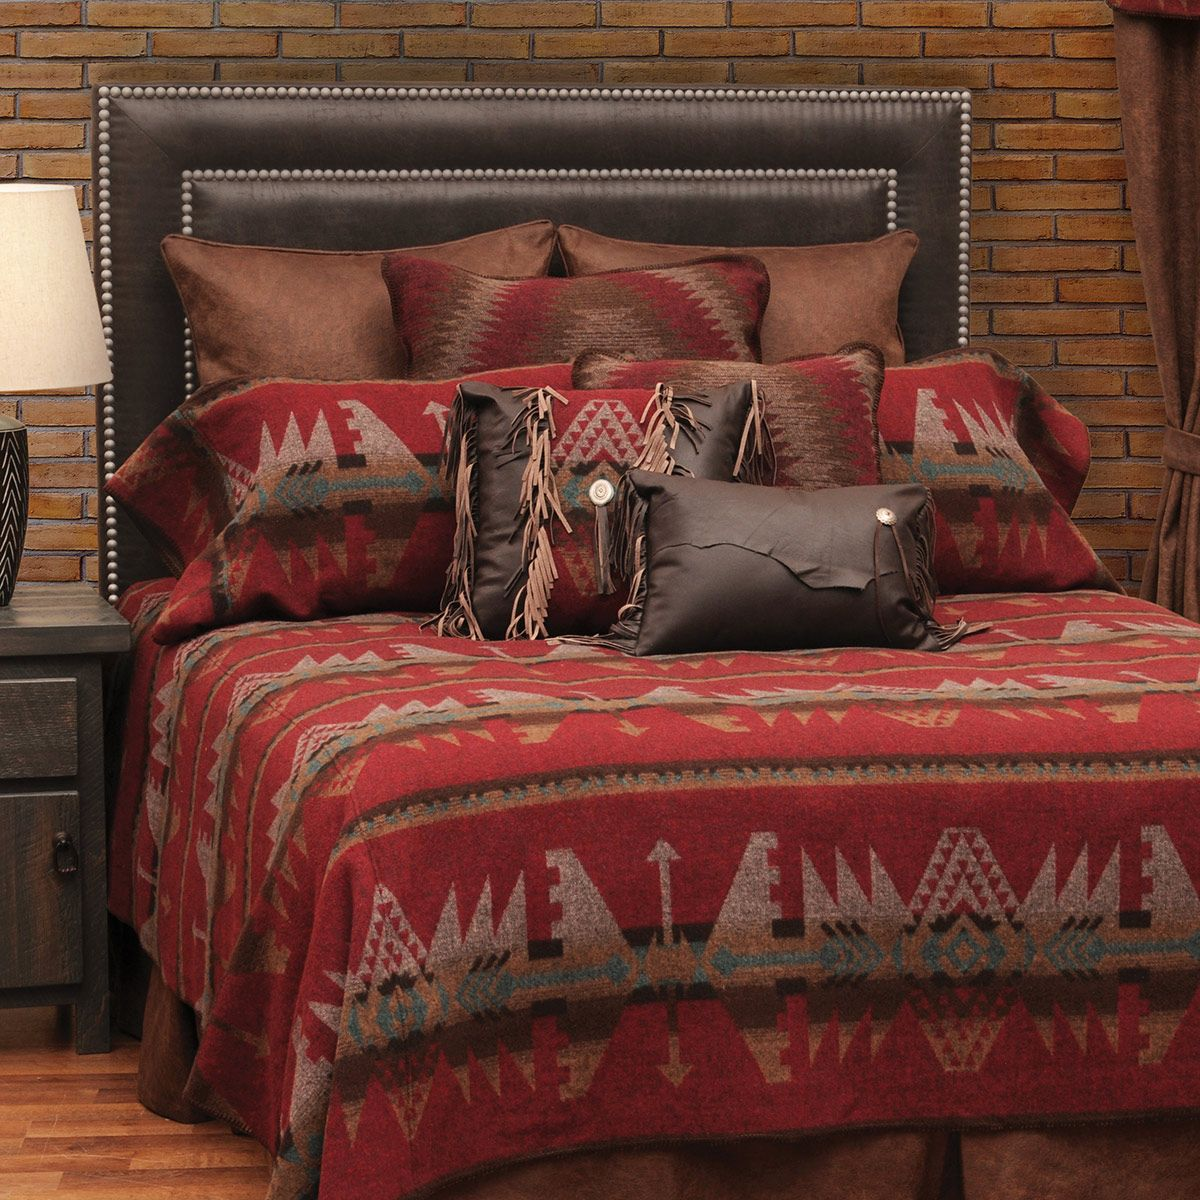 Yellowstone III Deluxe Bed Set - Cal. King